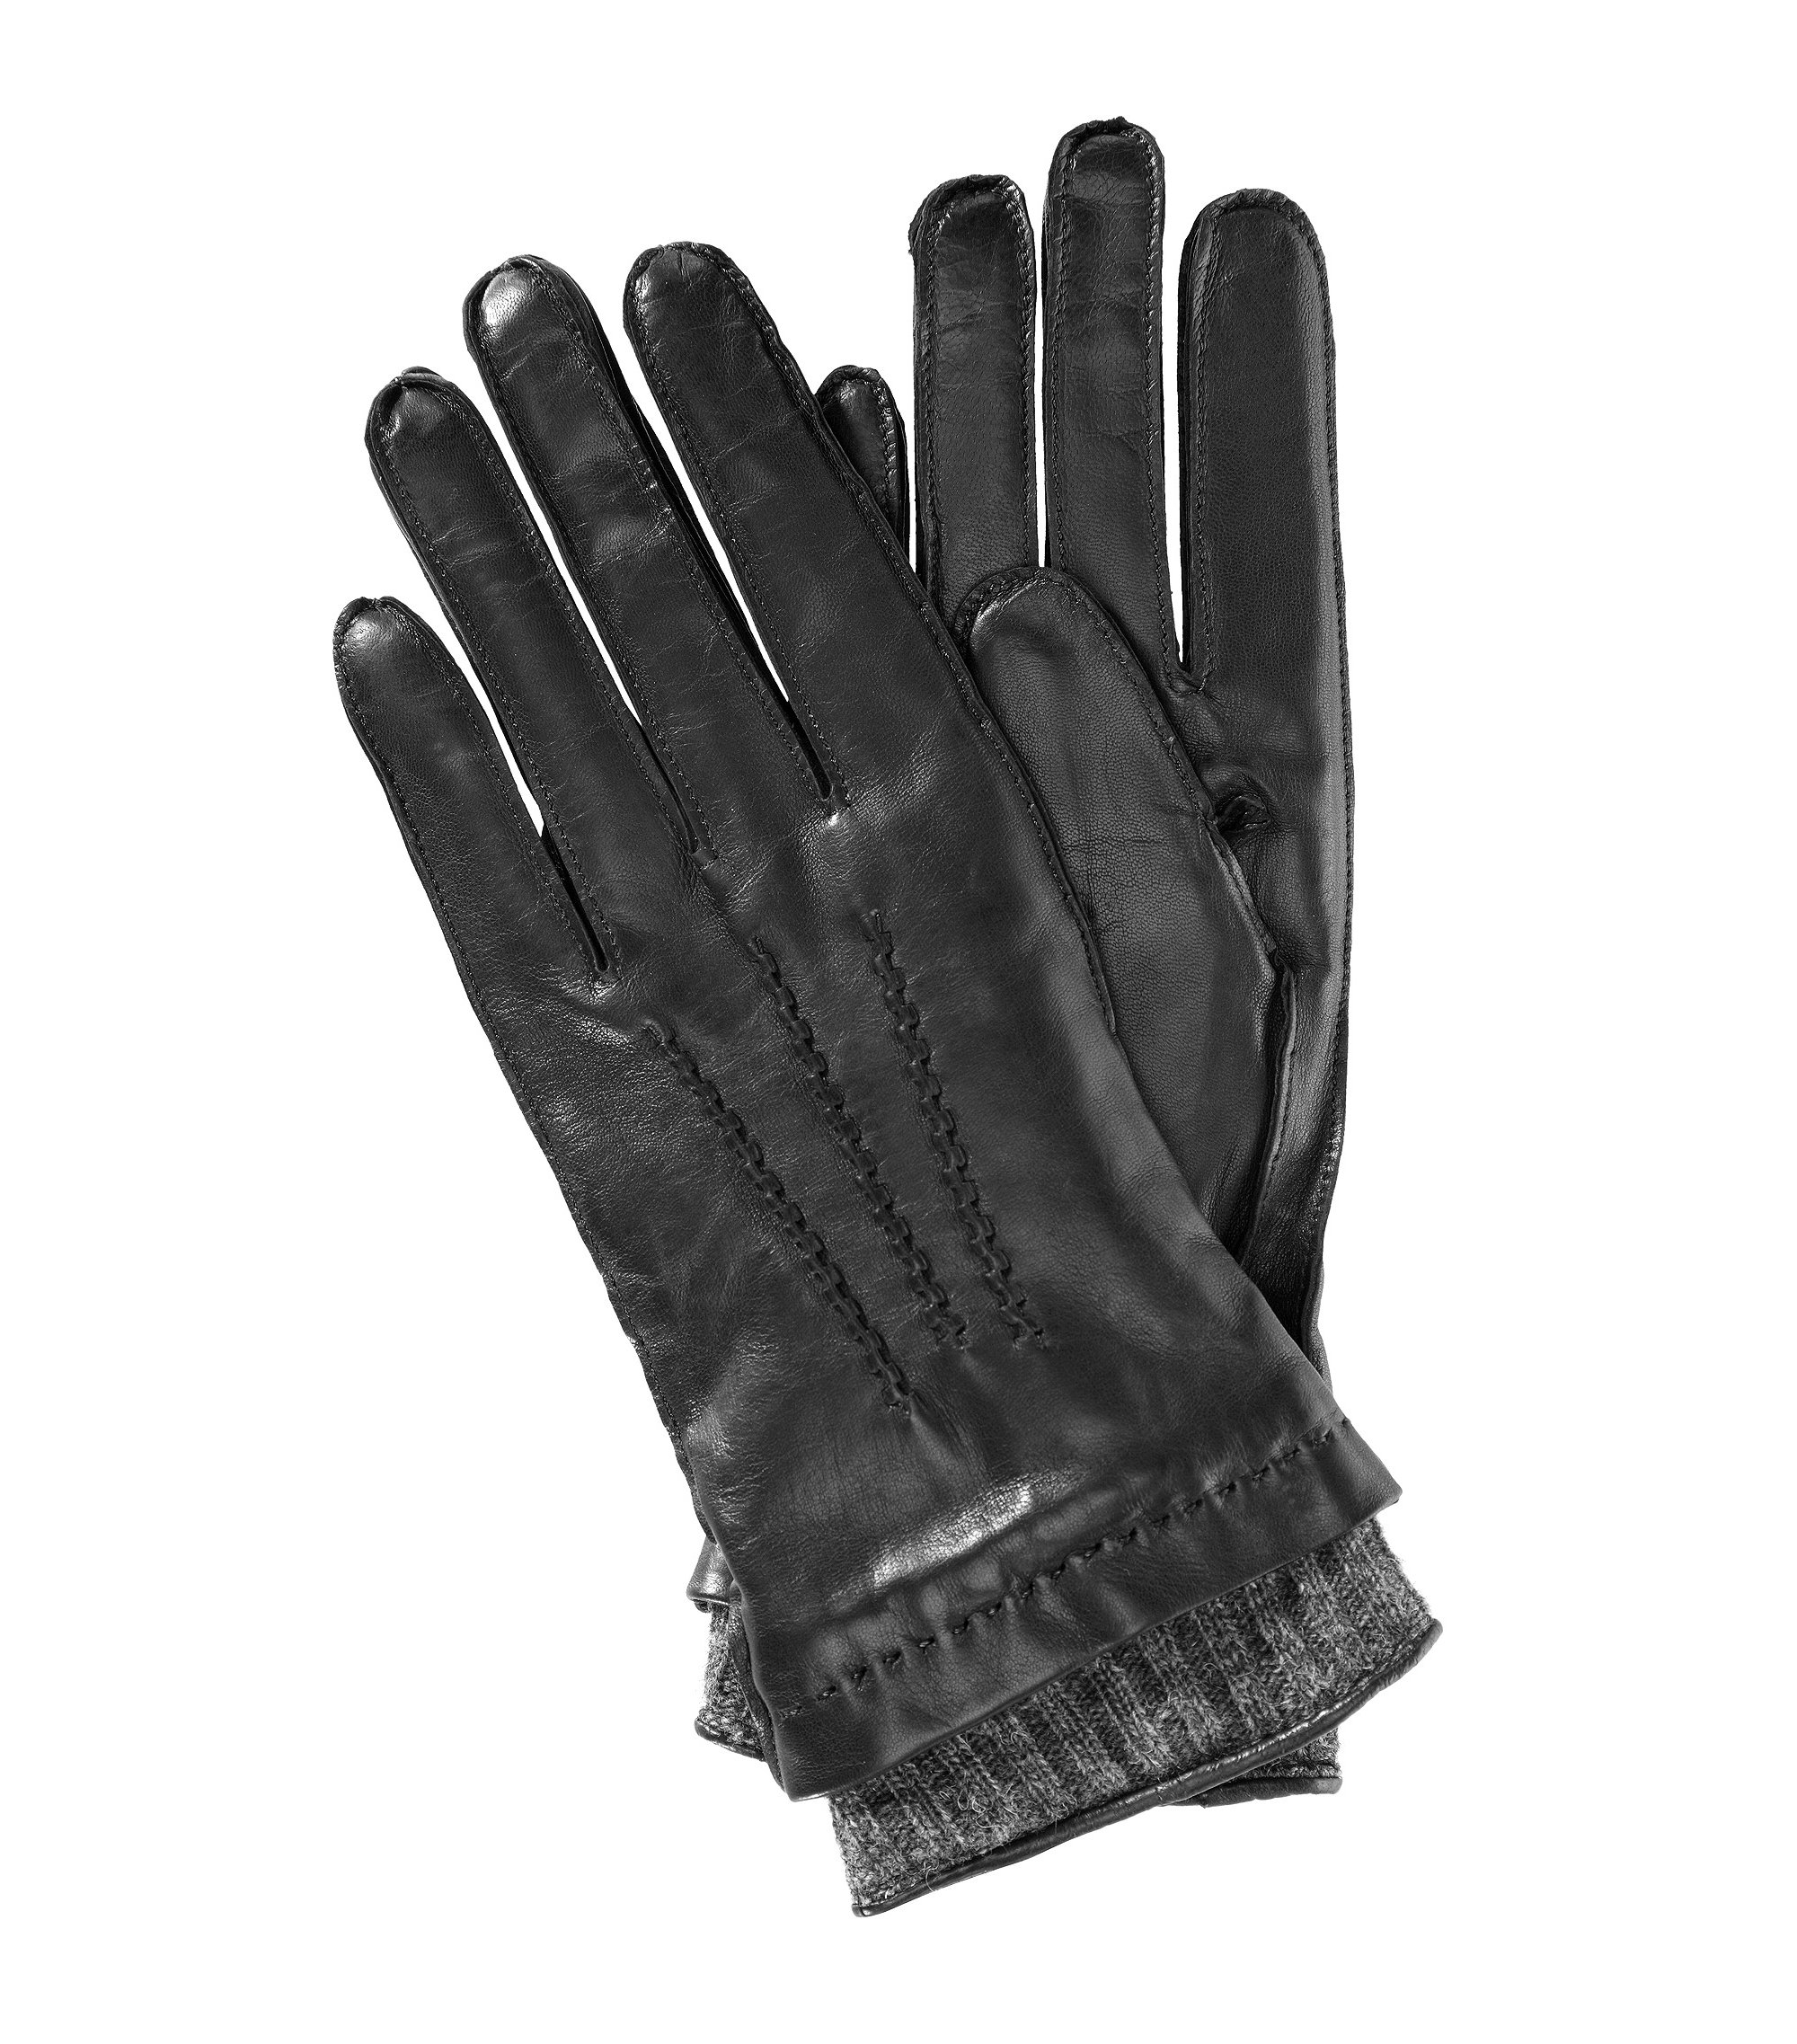 Lamb leather gloves 'GL 228', Black